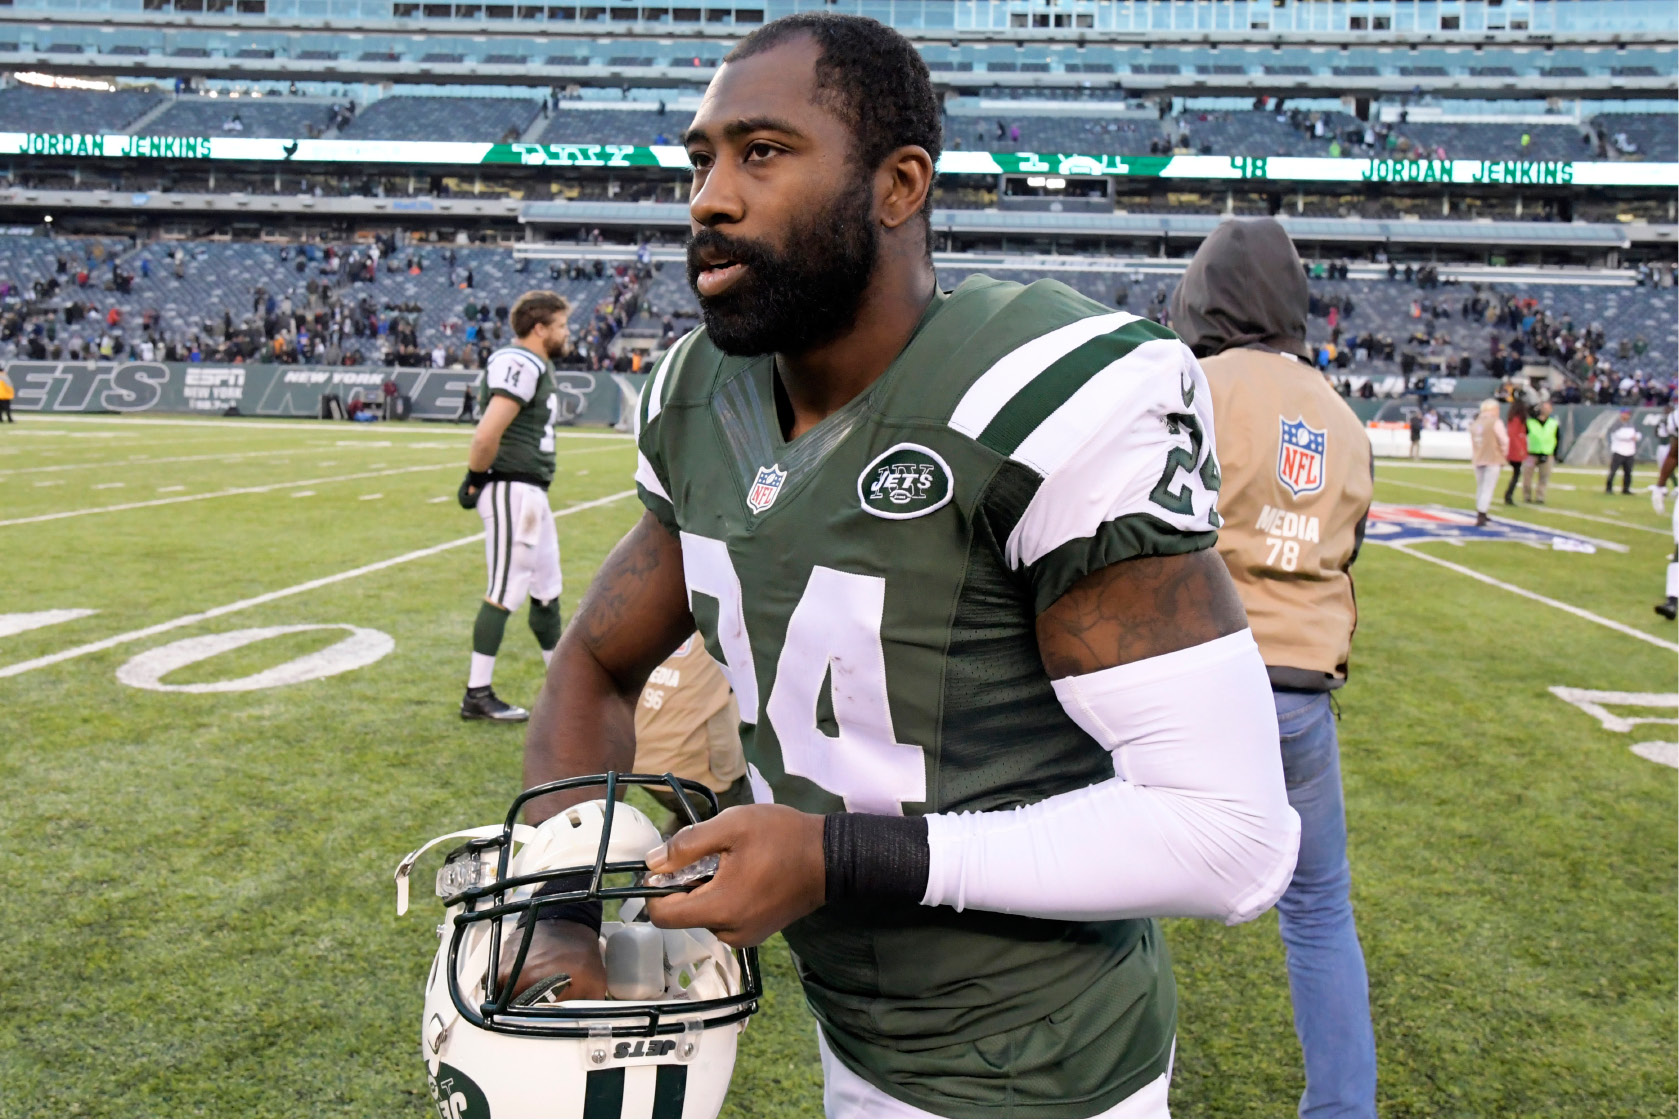 FILE - In this Sunday, Jan. 1, 2017, file photo, New York Jets cornerback Darrelle Revis walks on the field after an NFL football game against the Buffalo Bills in East Rutherford, N.J. Revis has a court date in Pittsburgh on Wednesday, March 15, 2017, on charges alleging he was in a fight with two men in Pittsburgh last month. The Jets released the former University of Pittsburgh star shortly after the Feb. 12 incident and he's yet to sign with another team. (AP Photo/Bill Kostroun, File)